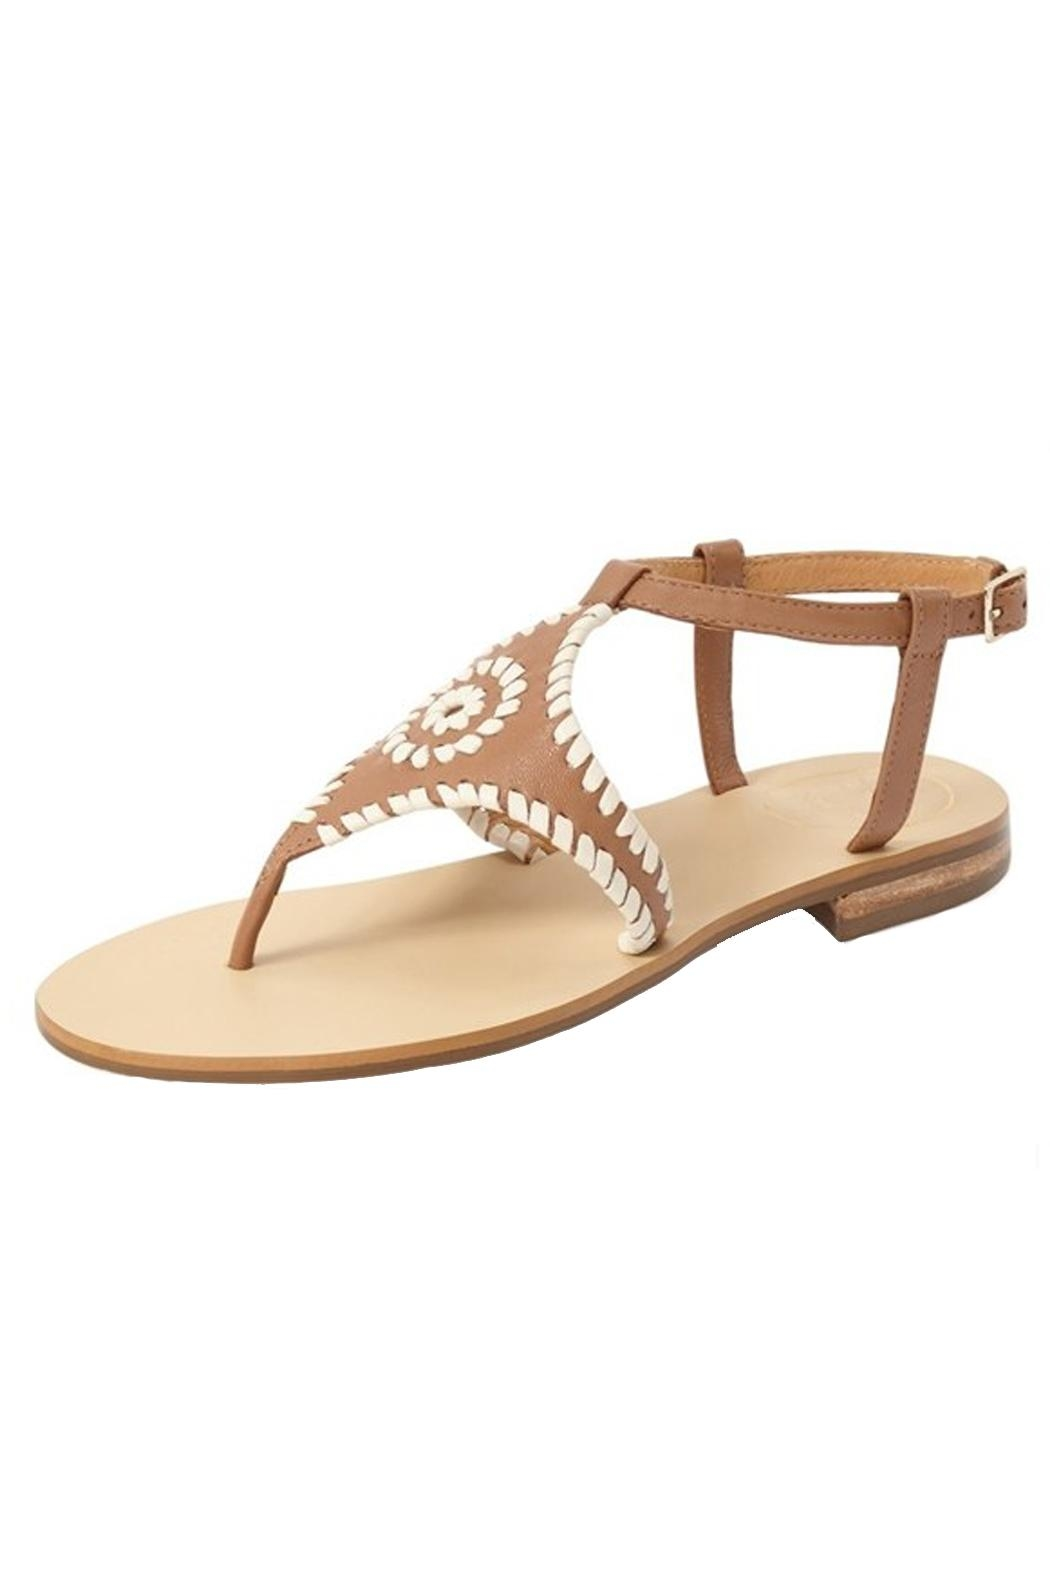 Jack Rogers Cognac Whipstiched Sandal - Main Image